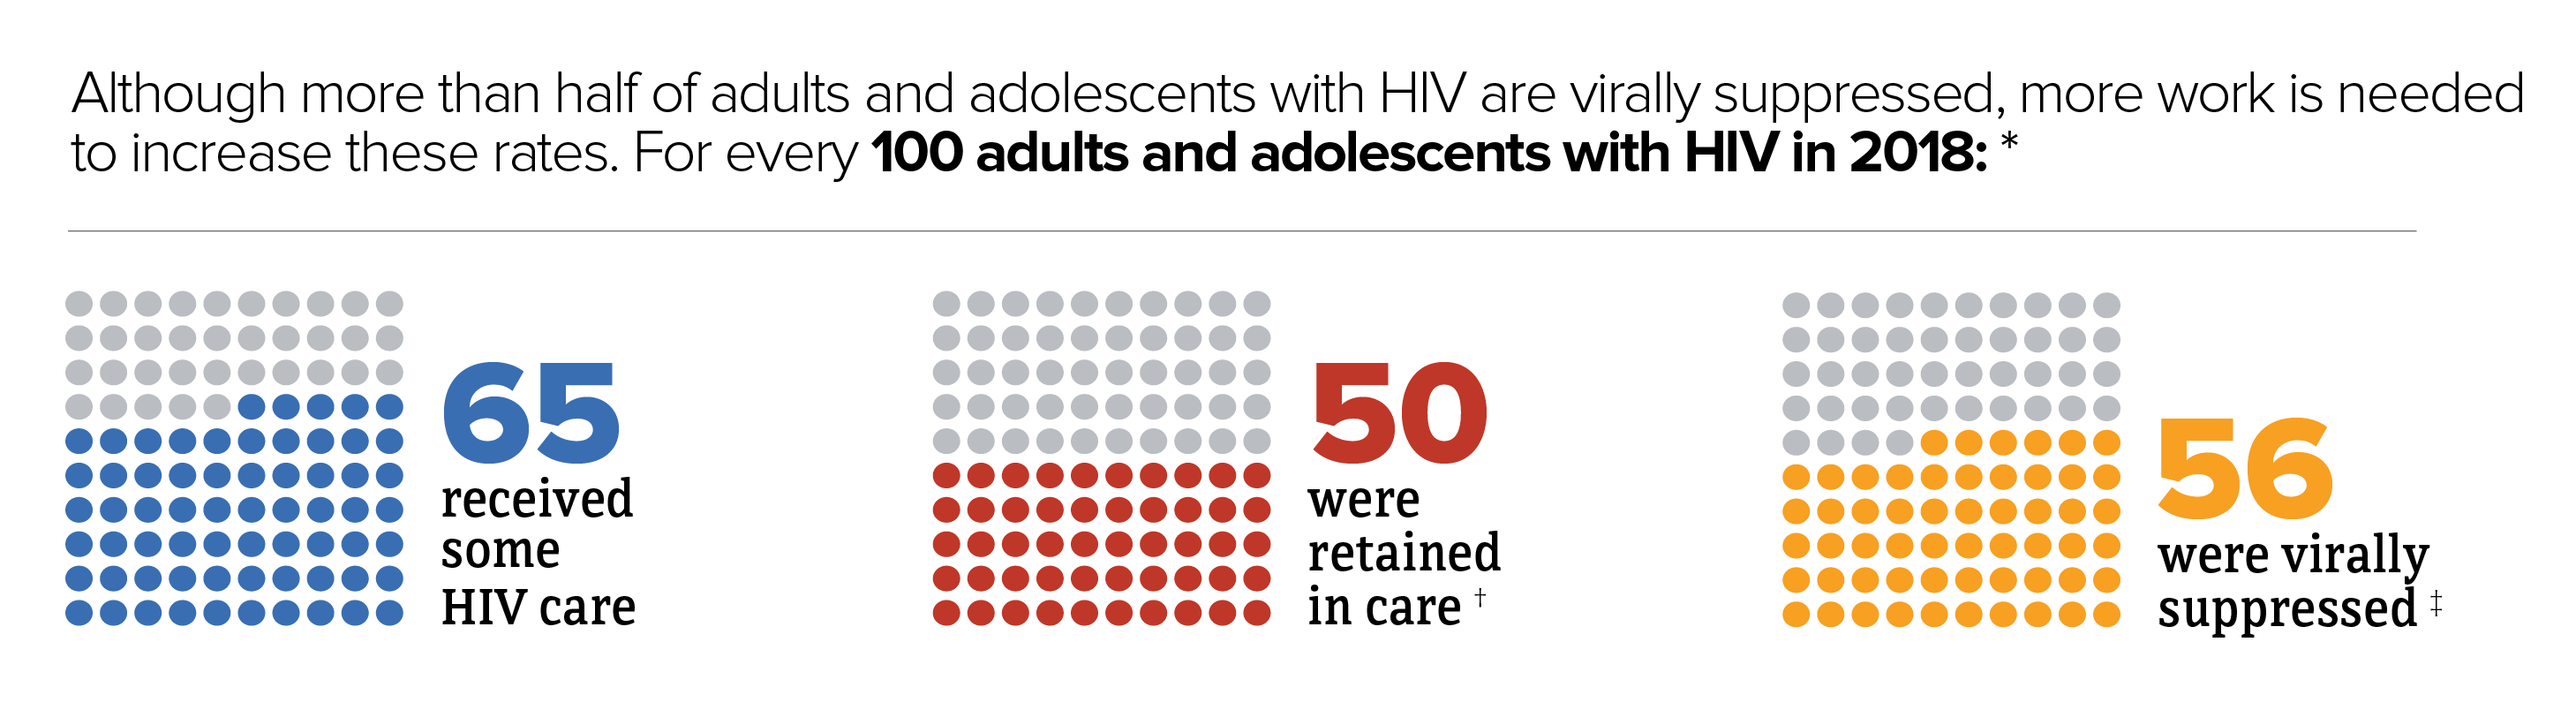 Although more than half of adults and adolescents with HIV are virally suppressed, more work is needed to increase these rates. For every 100 adults and adolescents with HIV, 65 received some HIV care, 50 were retained in care, and 56 were virally suppressed.